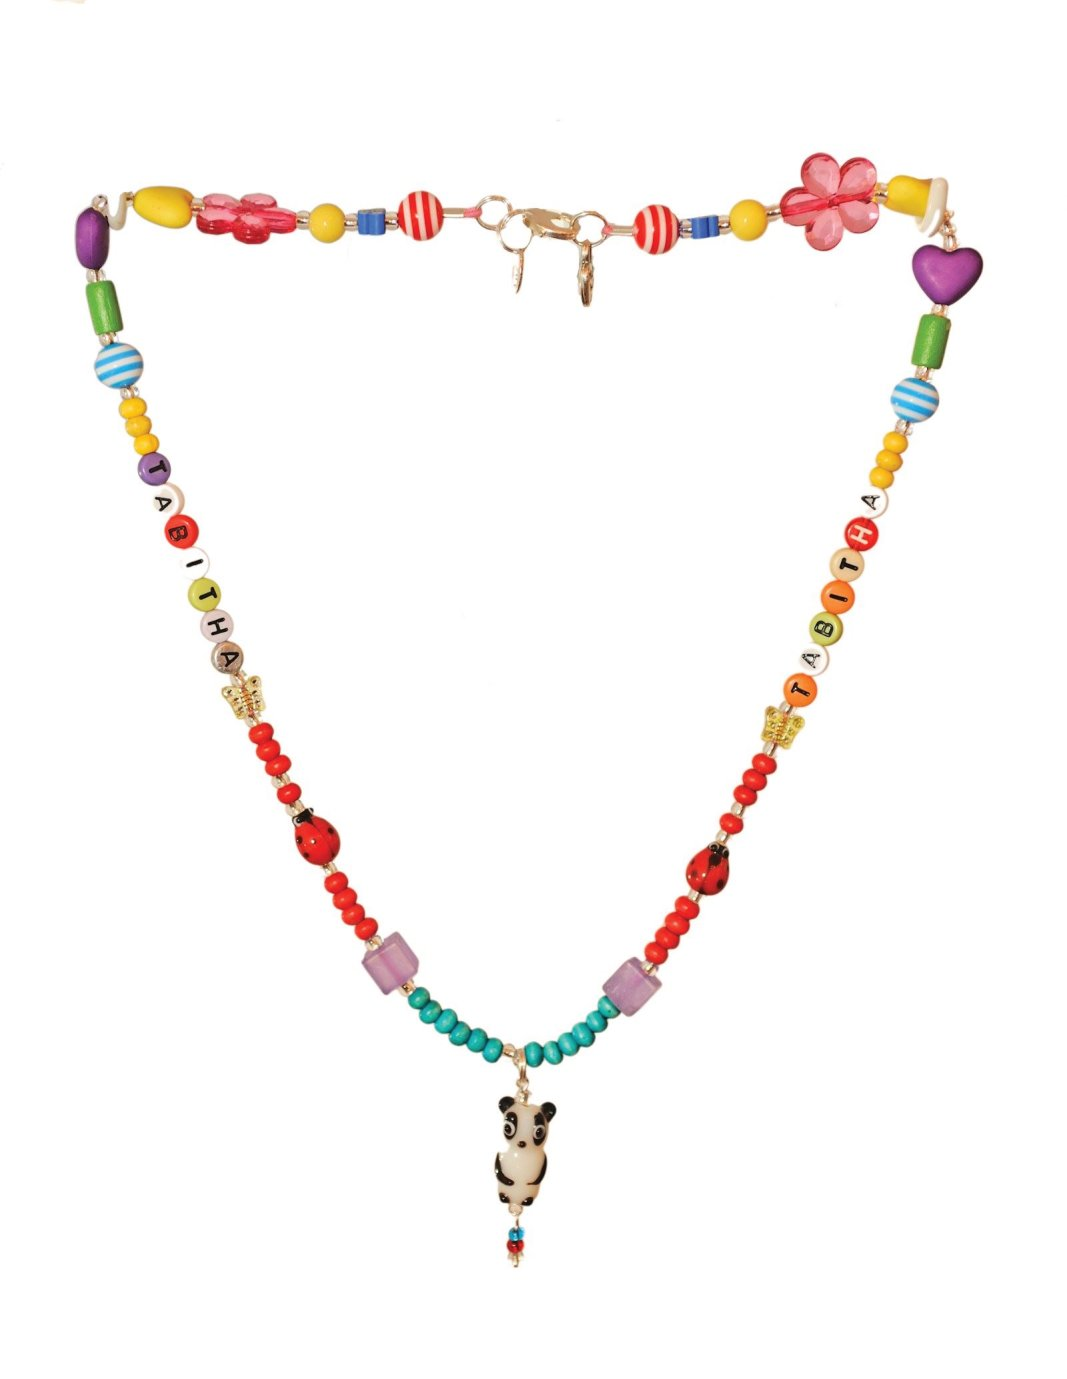 The winning necklace design made up by Beadoir for our winner